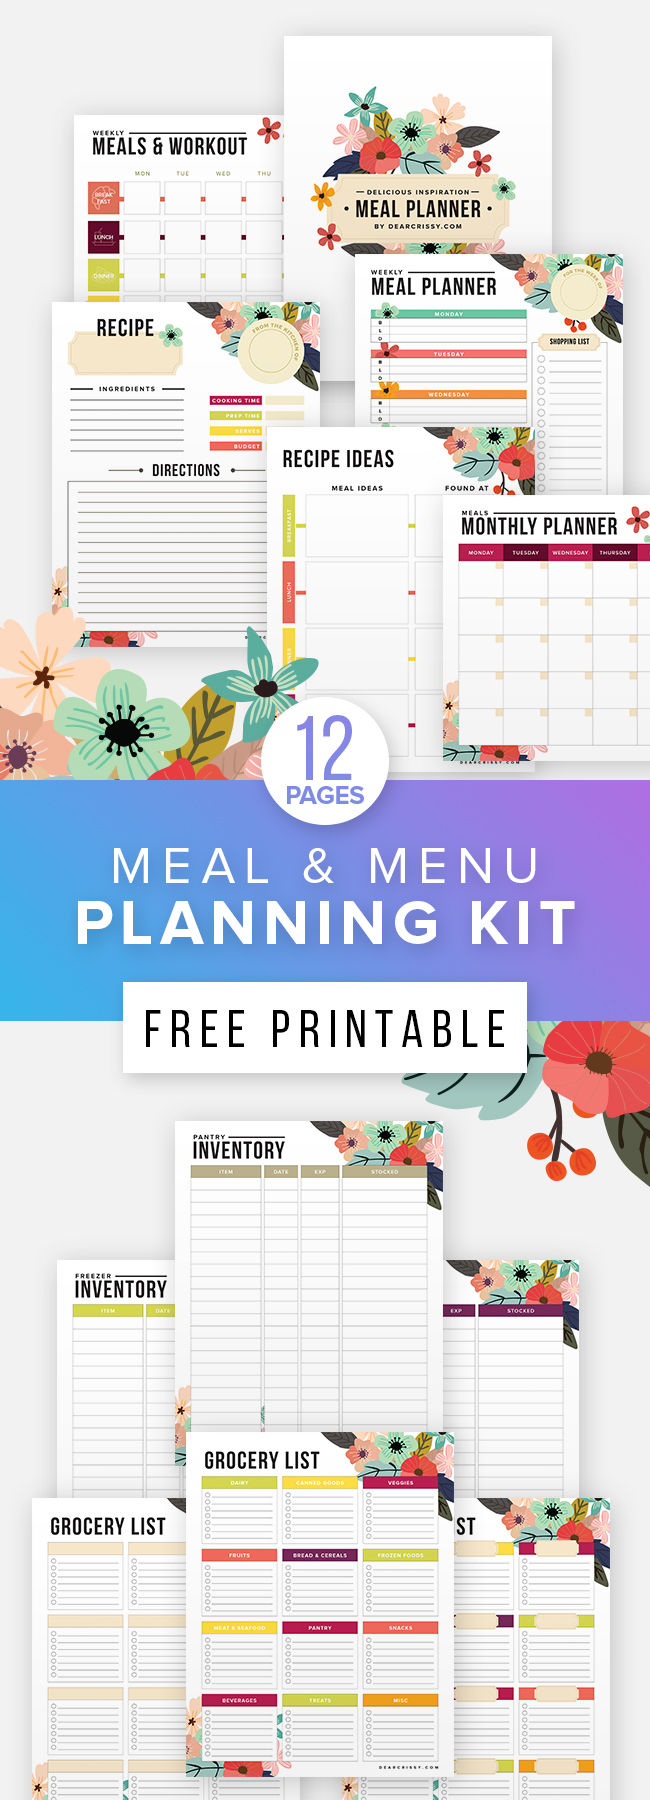 Spread of Menu and Meal Planning Free Printables Kit